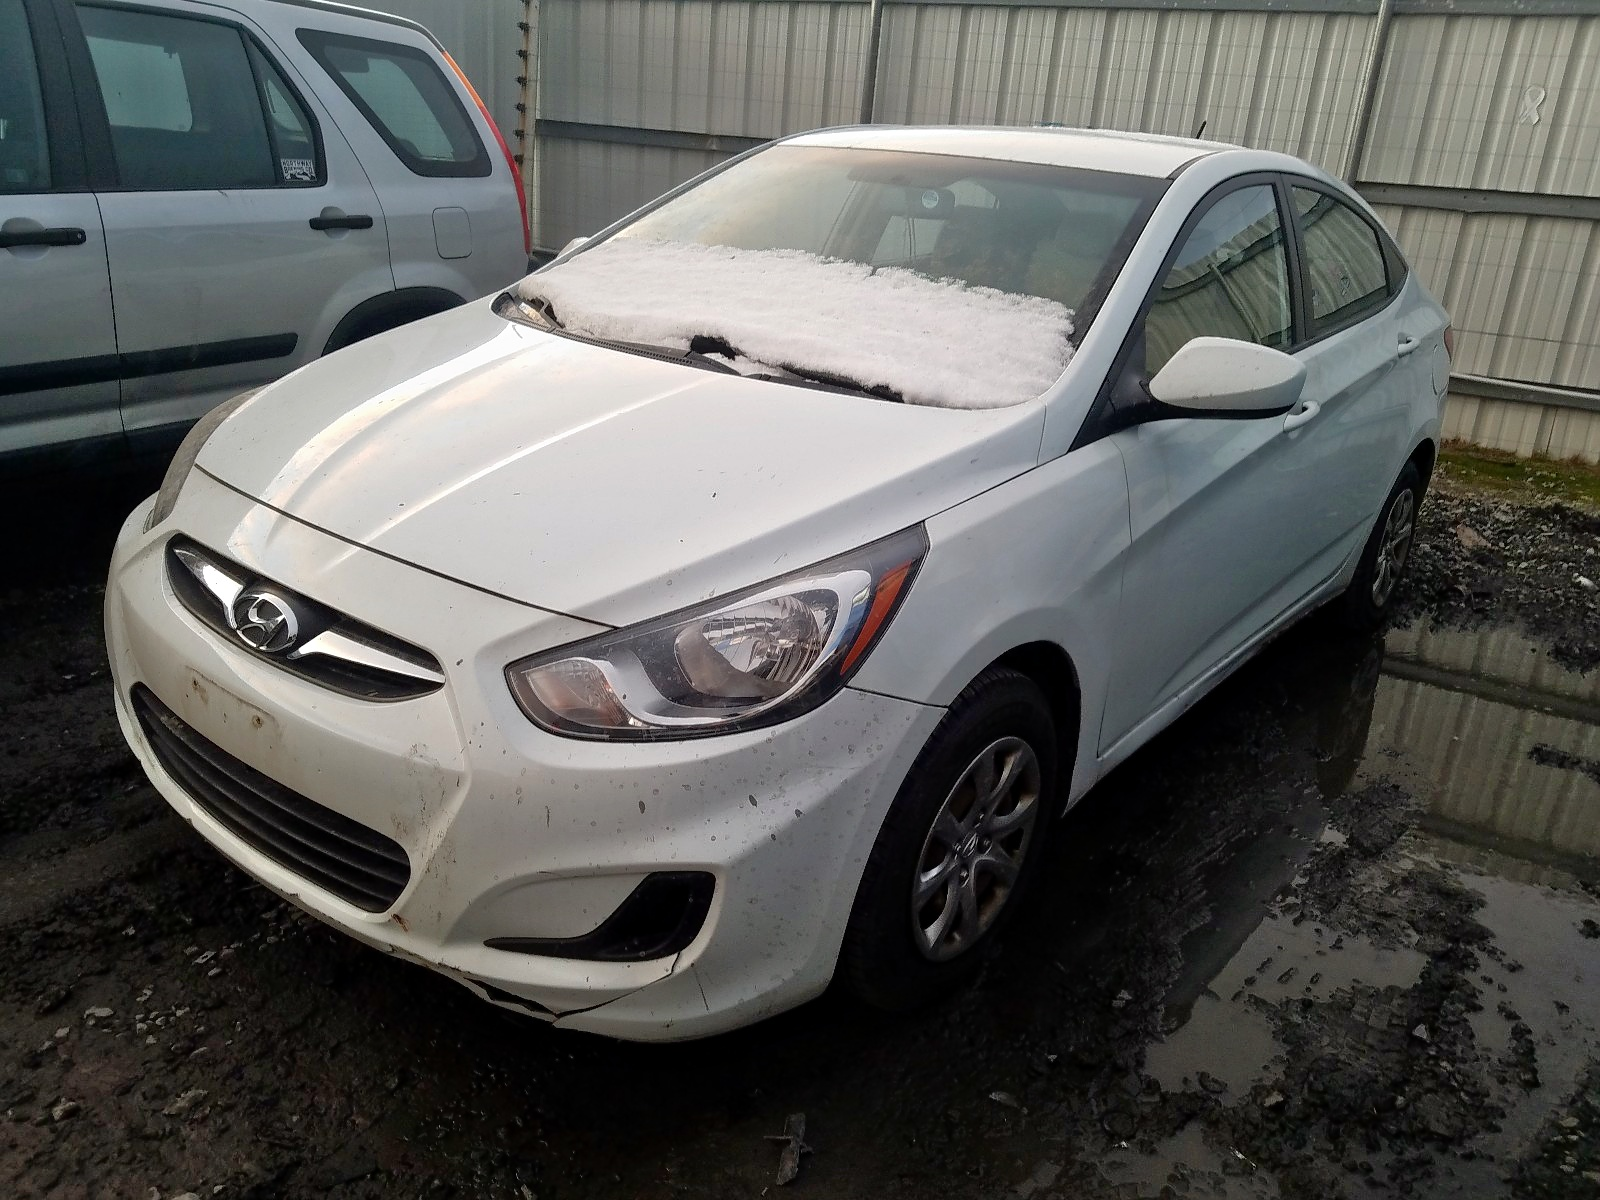 2012 Hyundai Accent Gls 1.6L Right View